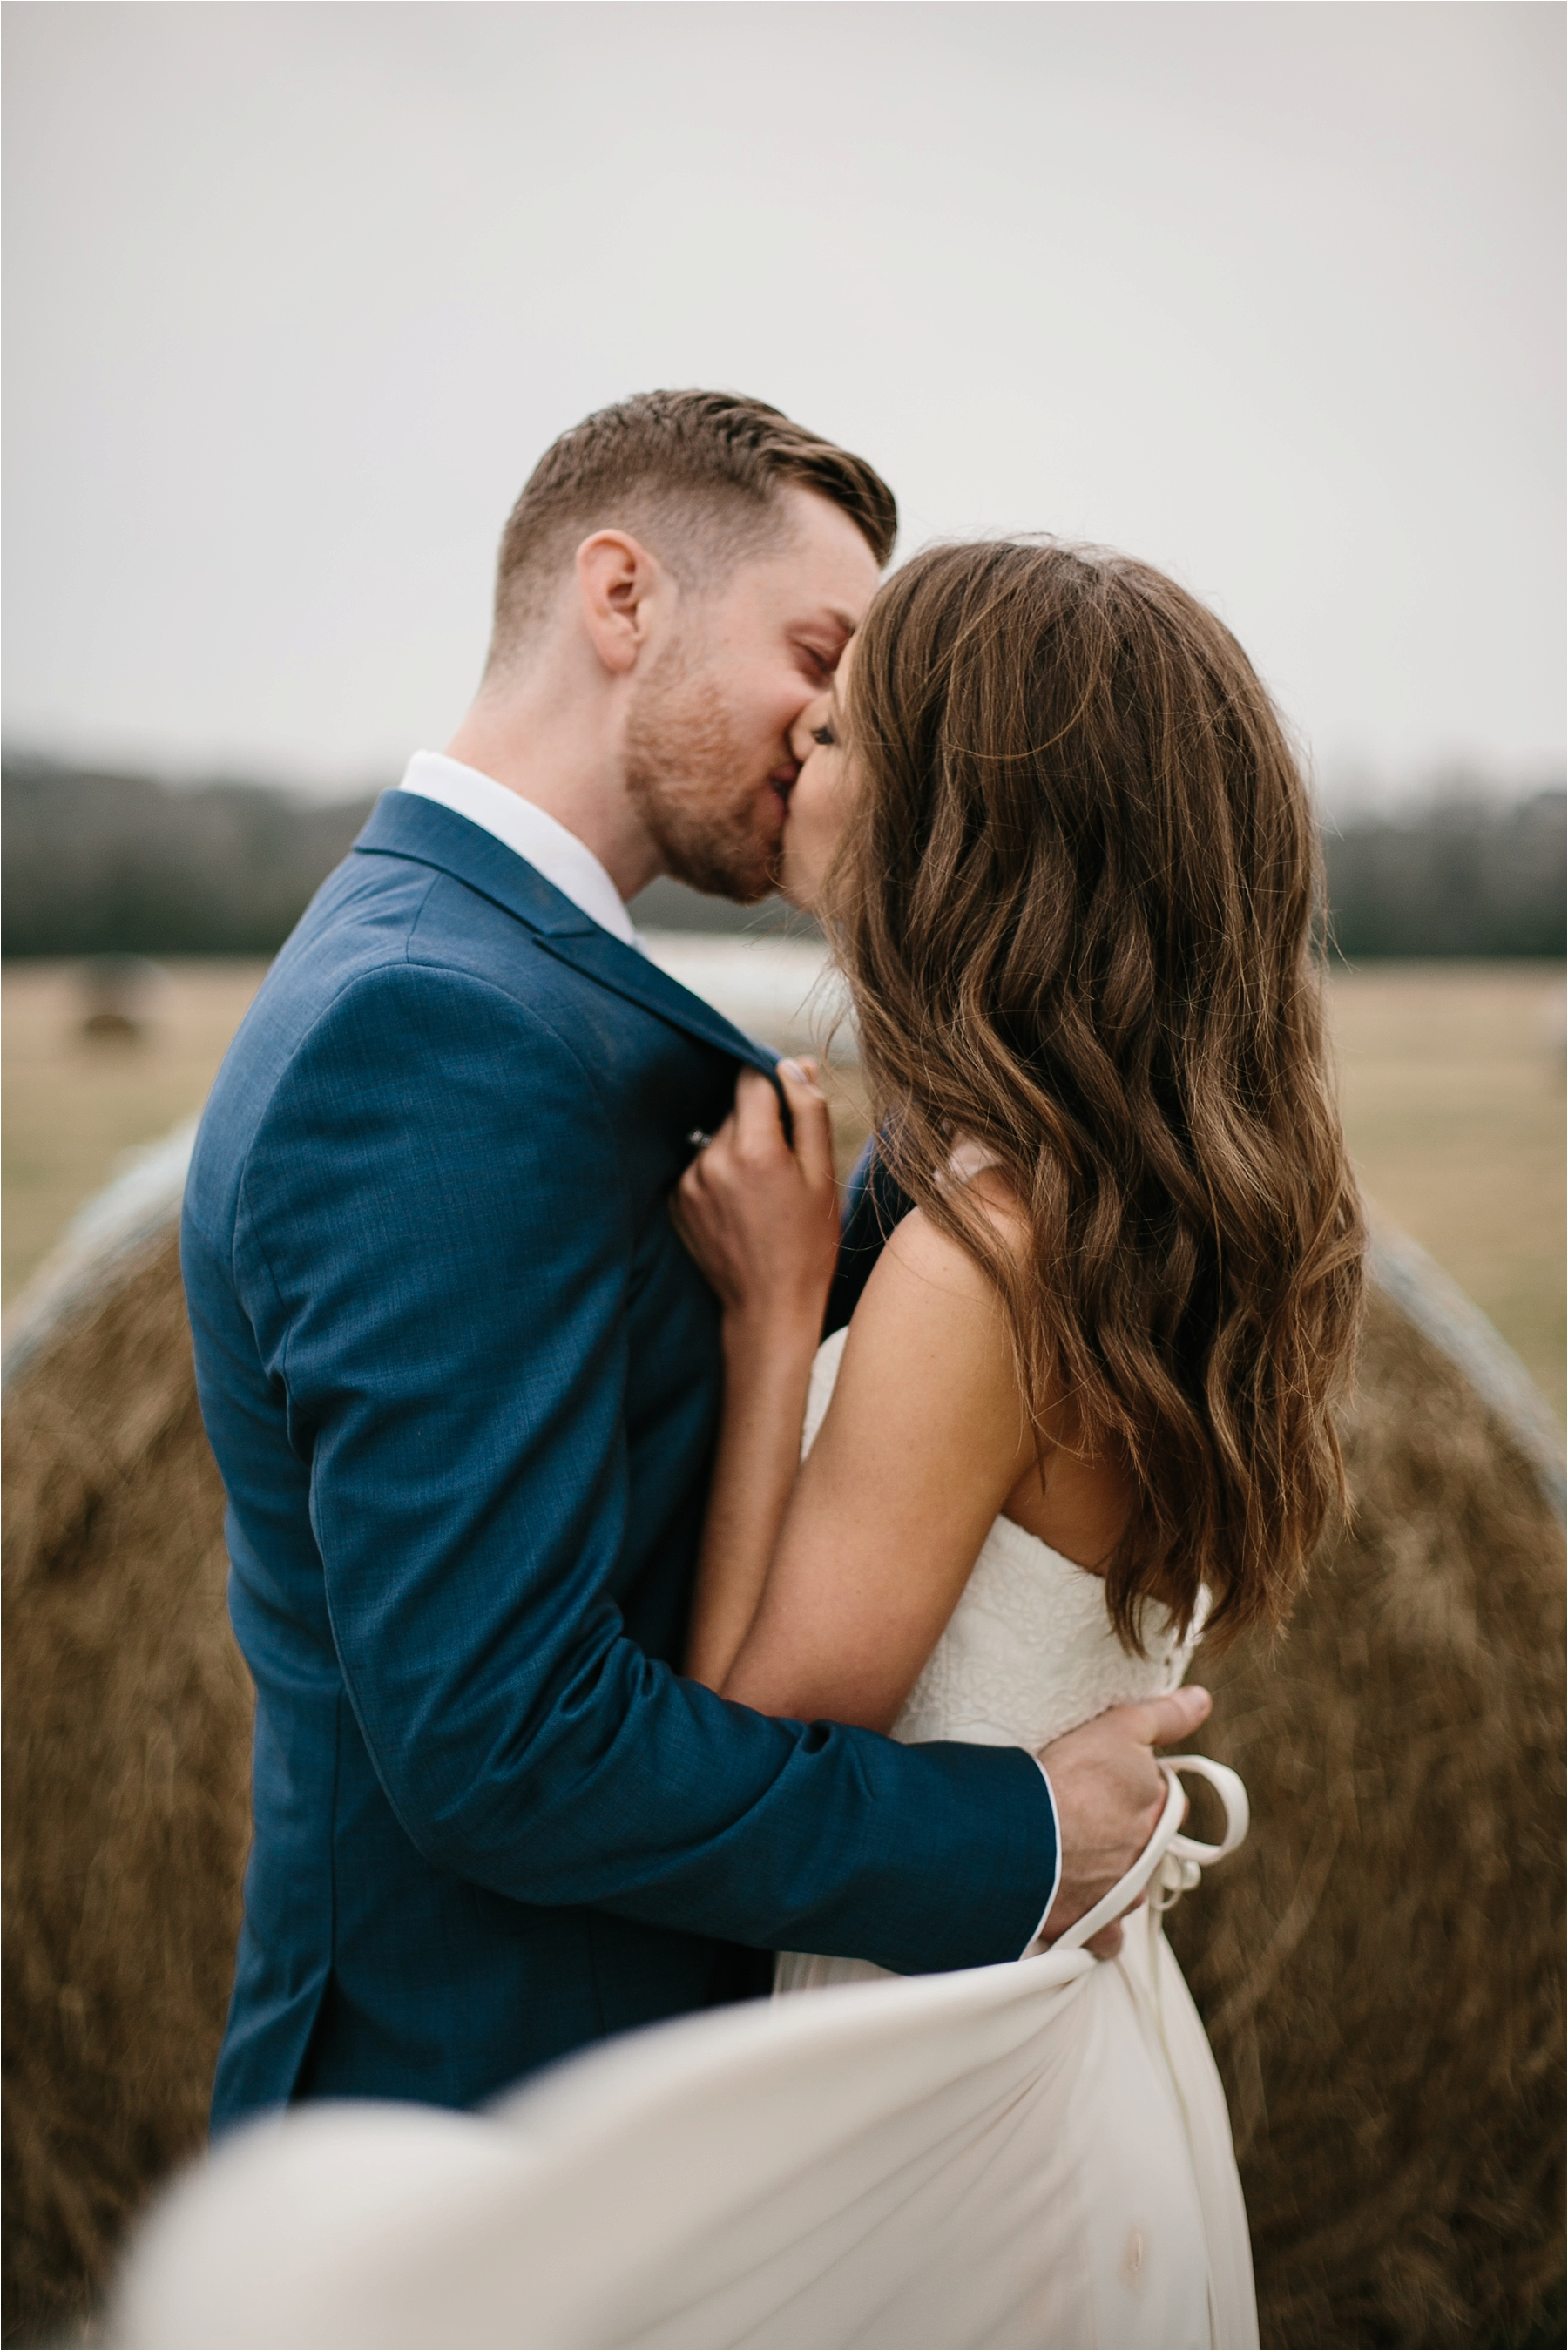 Lauren + Matt __ an intimate, emotional, blush pink, navy blue, and greenery toned wedding accents at the Brooks at Weatherford by North Texas Wedding Photographer Rachel Meagan Photography051